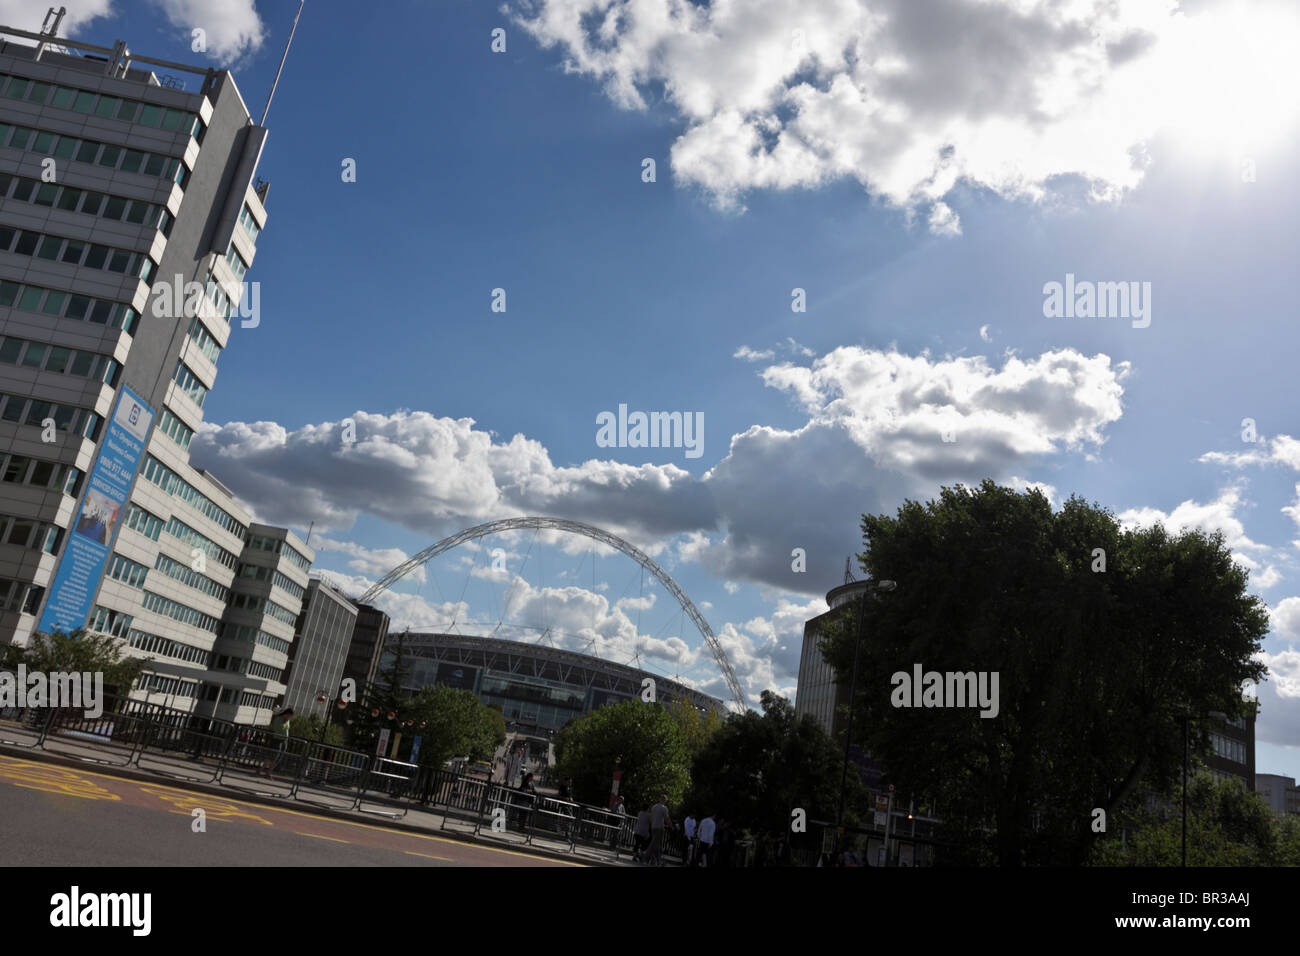 Angled aspect of the modern and easily recognizable Wembley Stadium viewed from Bridge Road near Wembley Park Station. - Stock Image